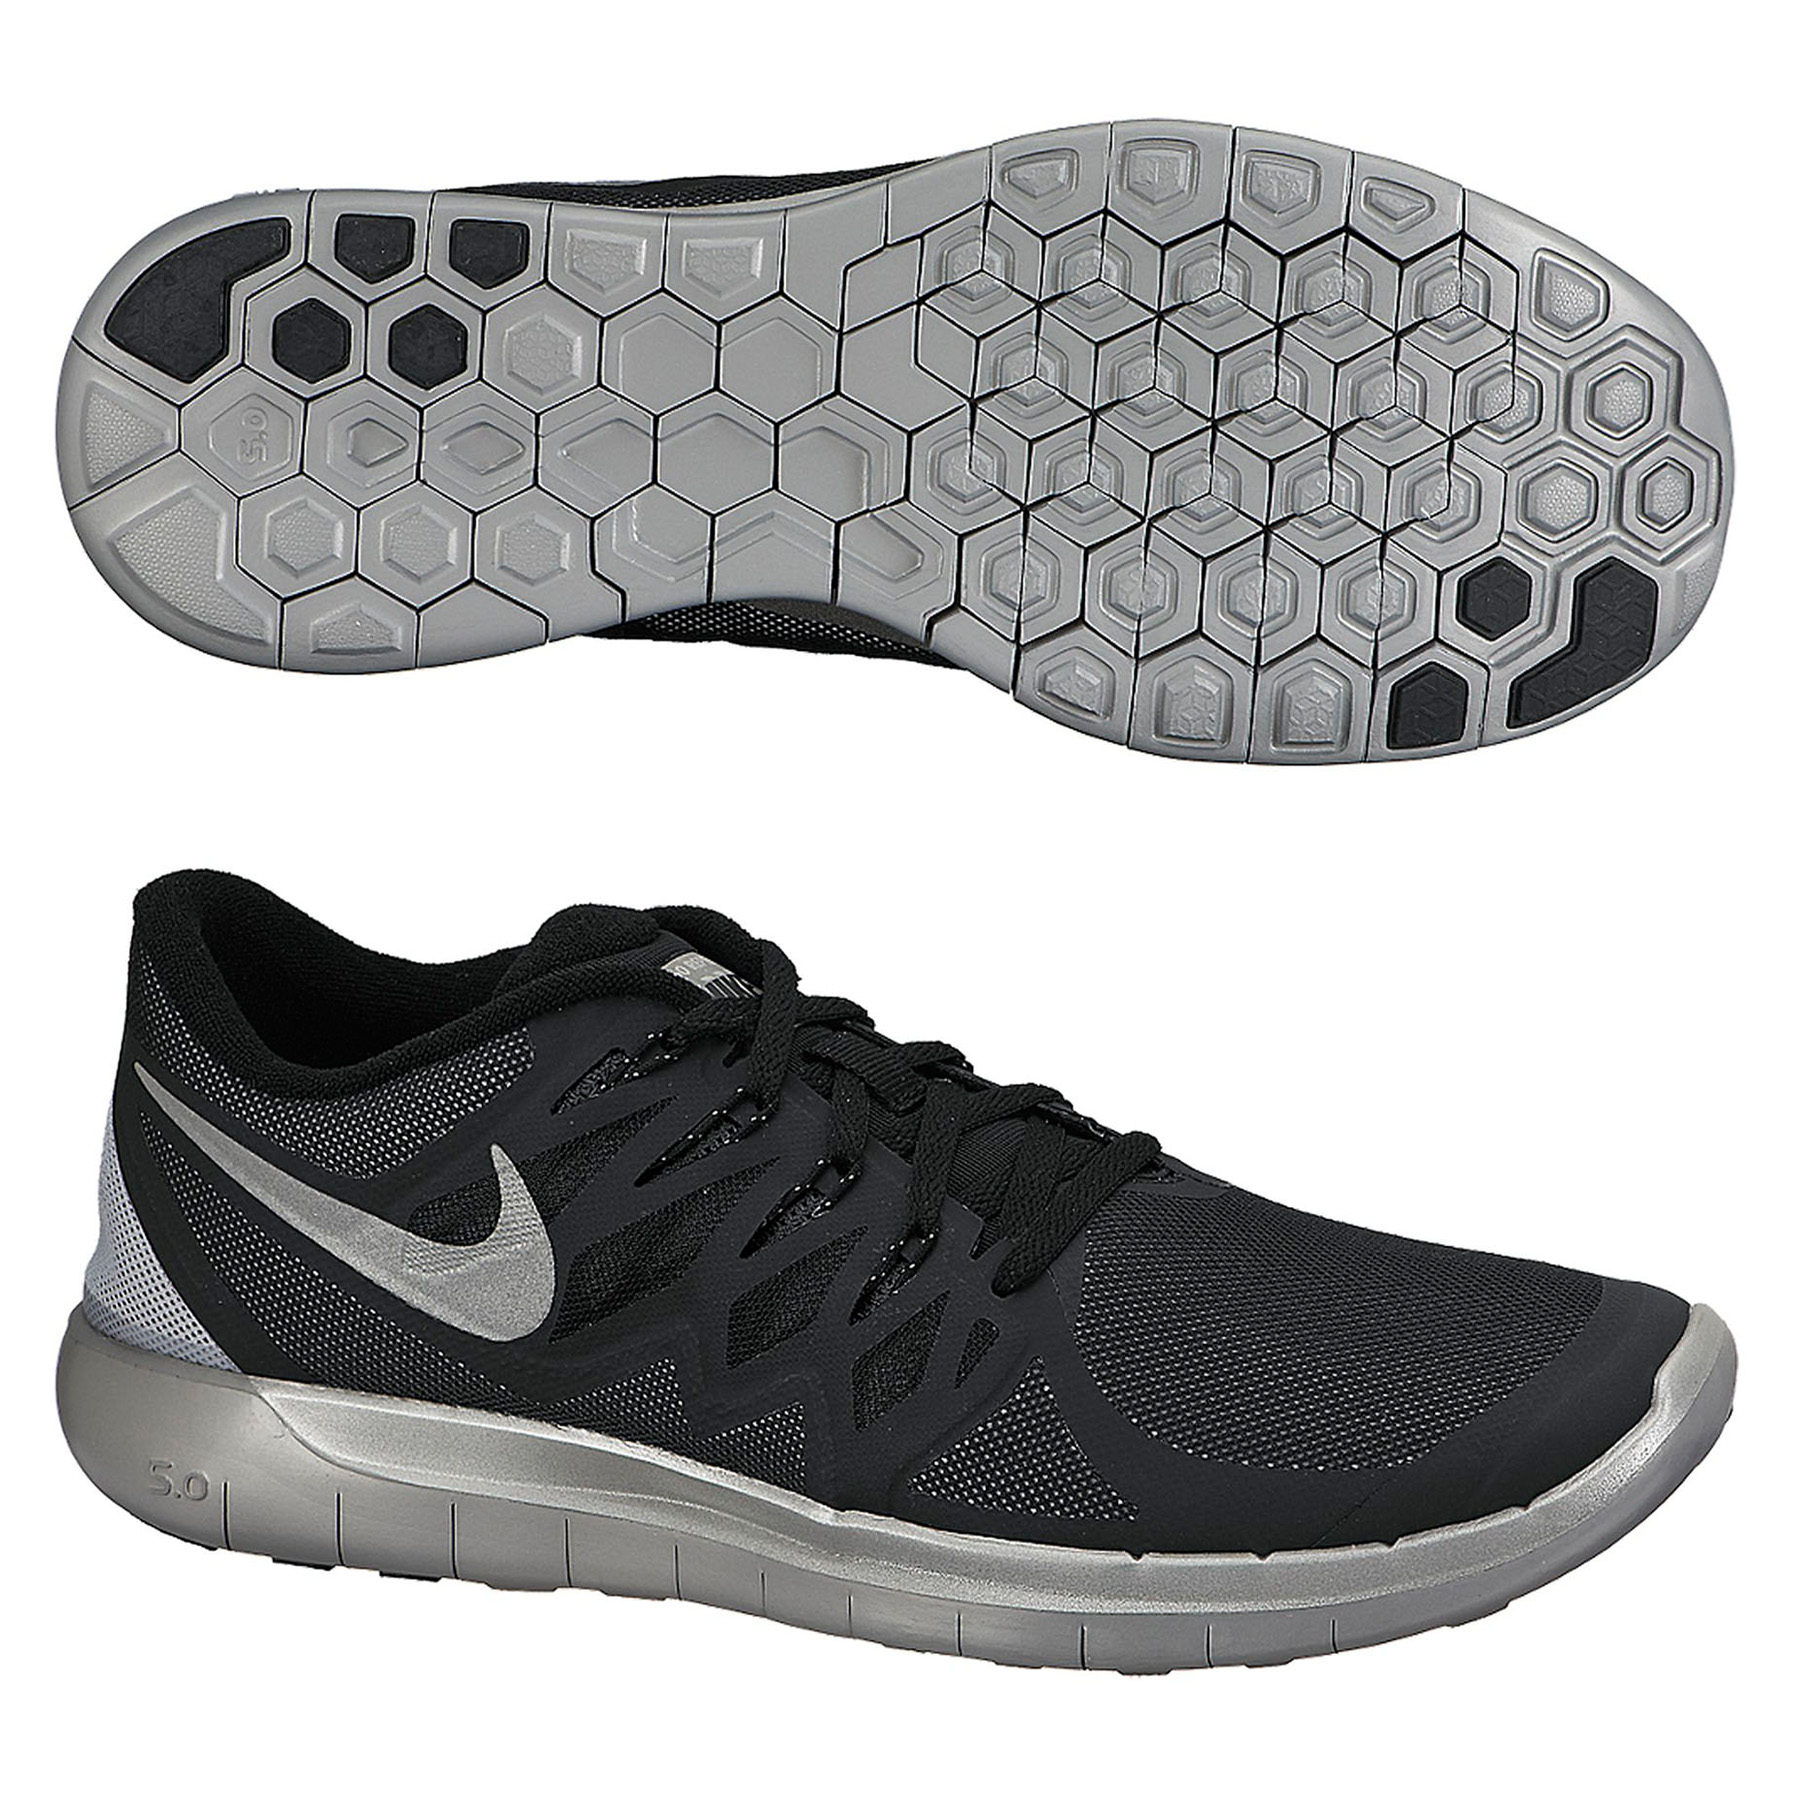 Nike Free 5.0 Flash Trainers Black